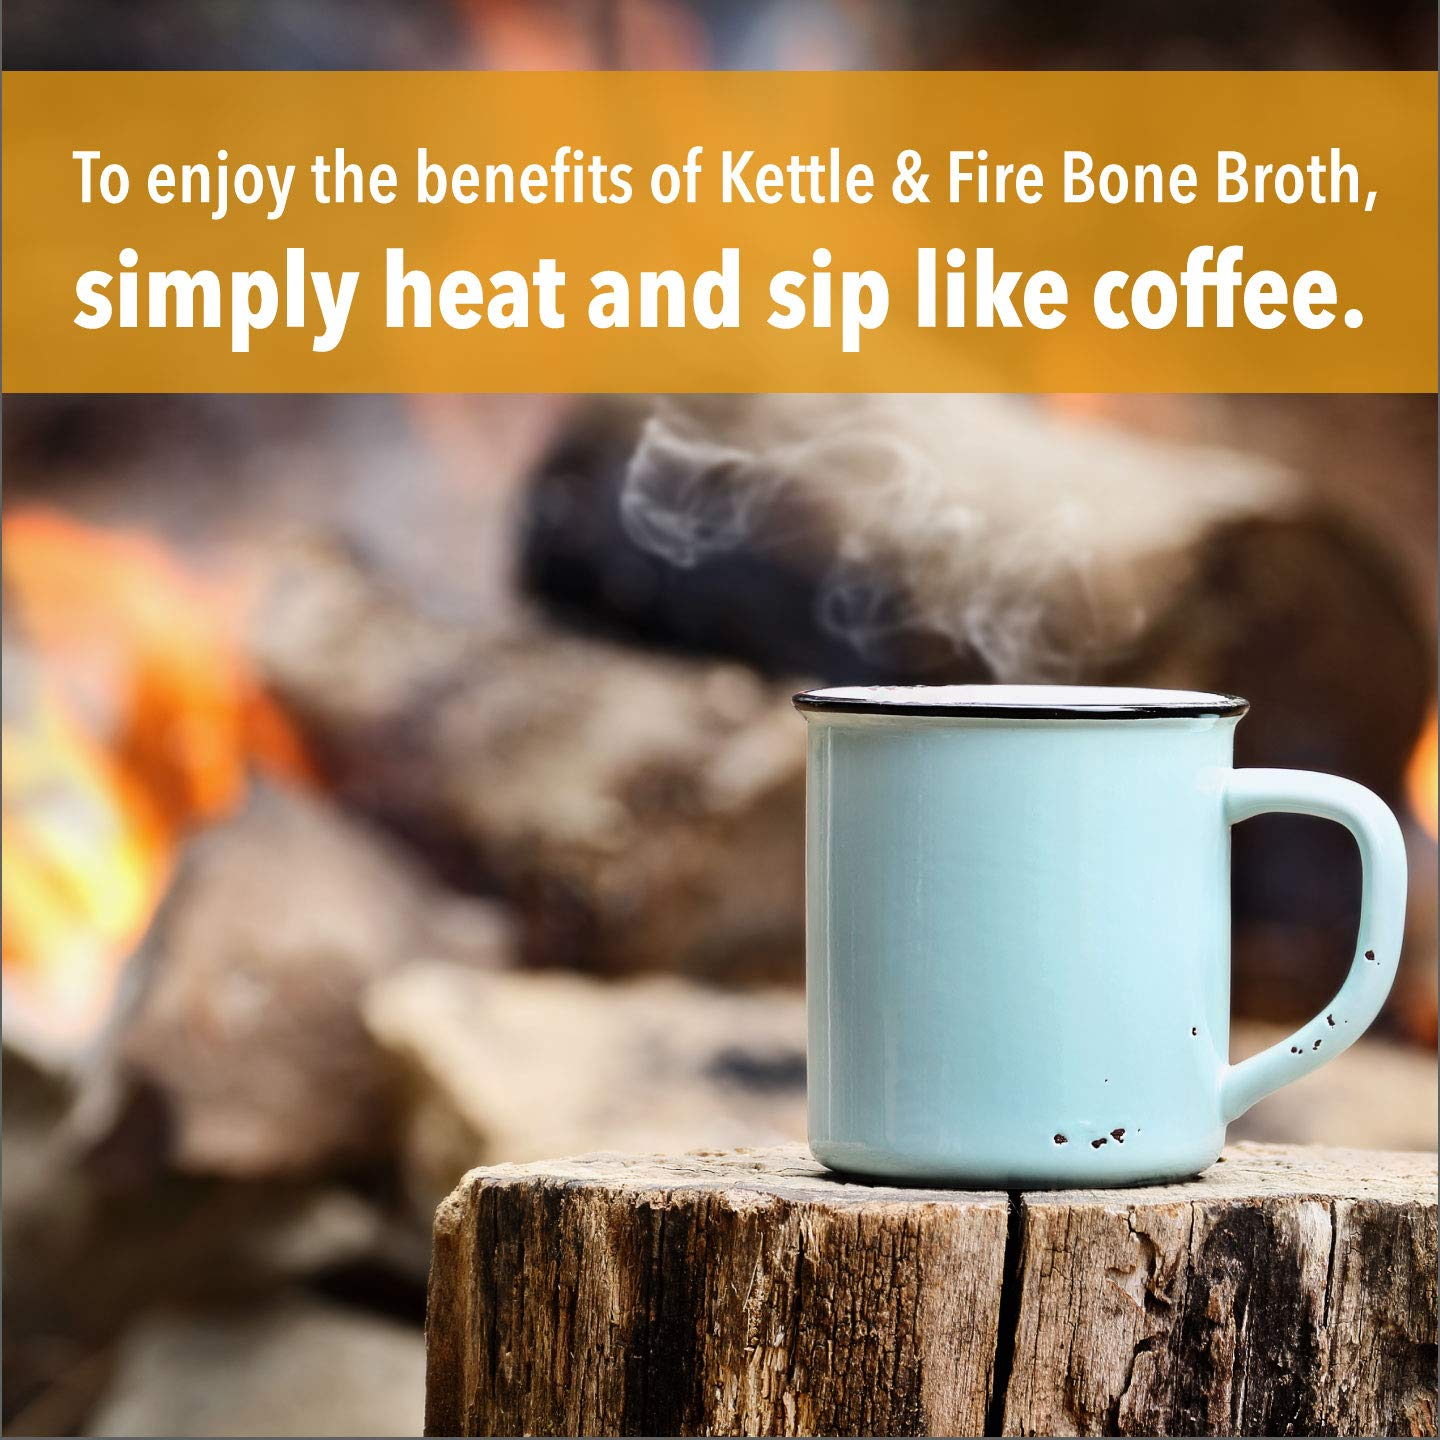 Chicken Bone Broth Soup by Kettle and Fire, Pack of 4, Keto Diet, Paleo Friendly, Whole 30 Approved, Gluten Free, with Collagen, 10g of protein, 16.2 fl oz by Kettle & Fire (Image #7)